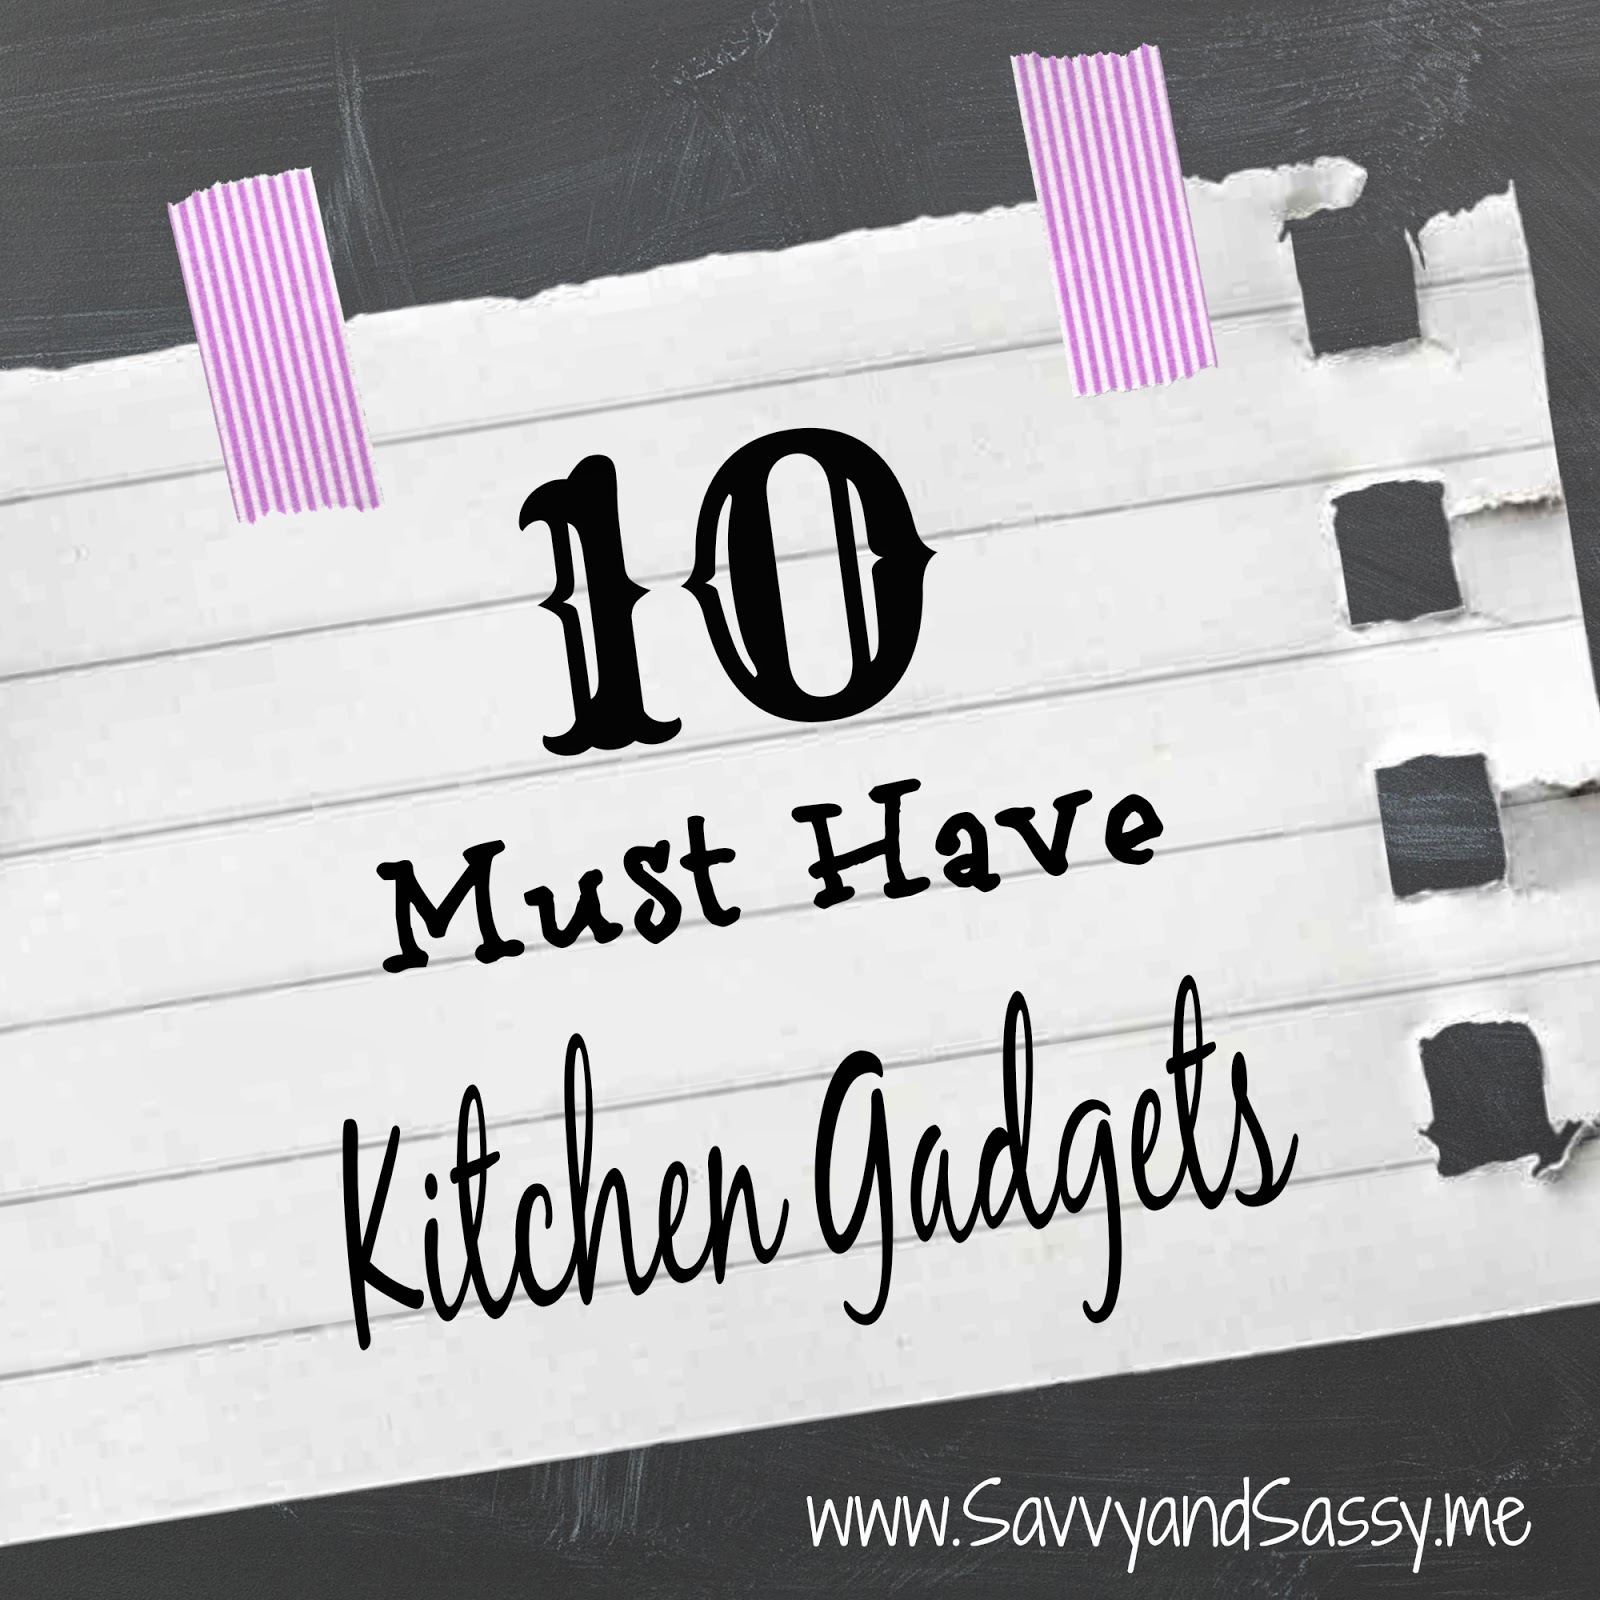 Savvy And Sassy My Top 10 Must Have Kitchen Gadgets